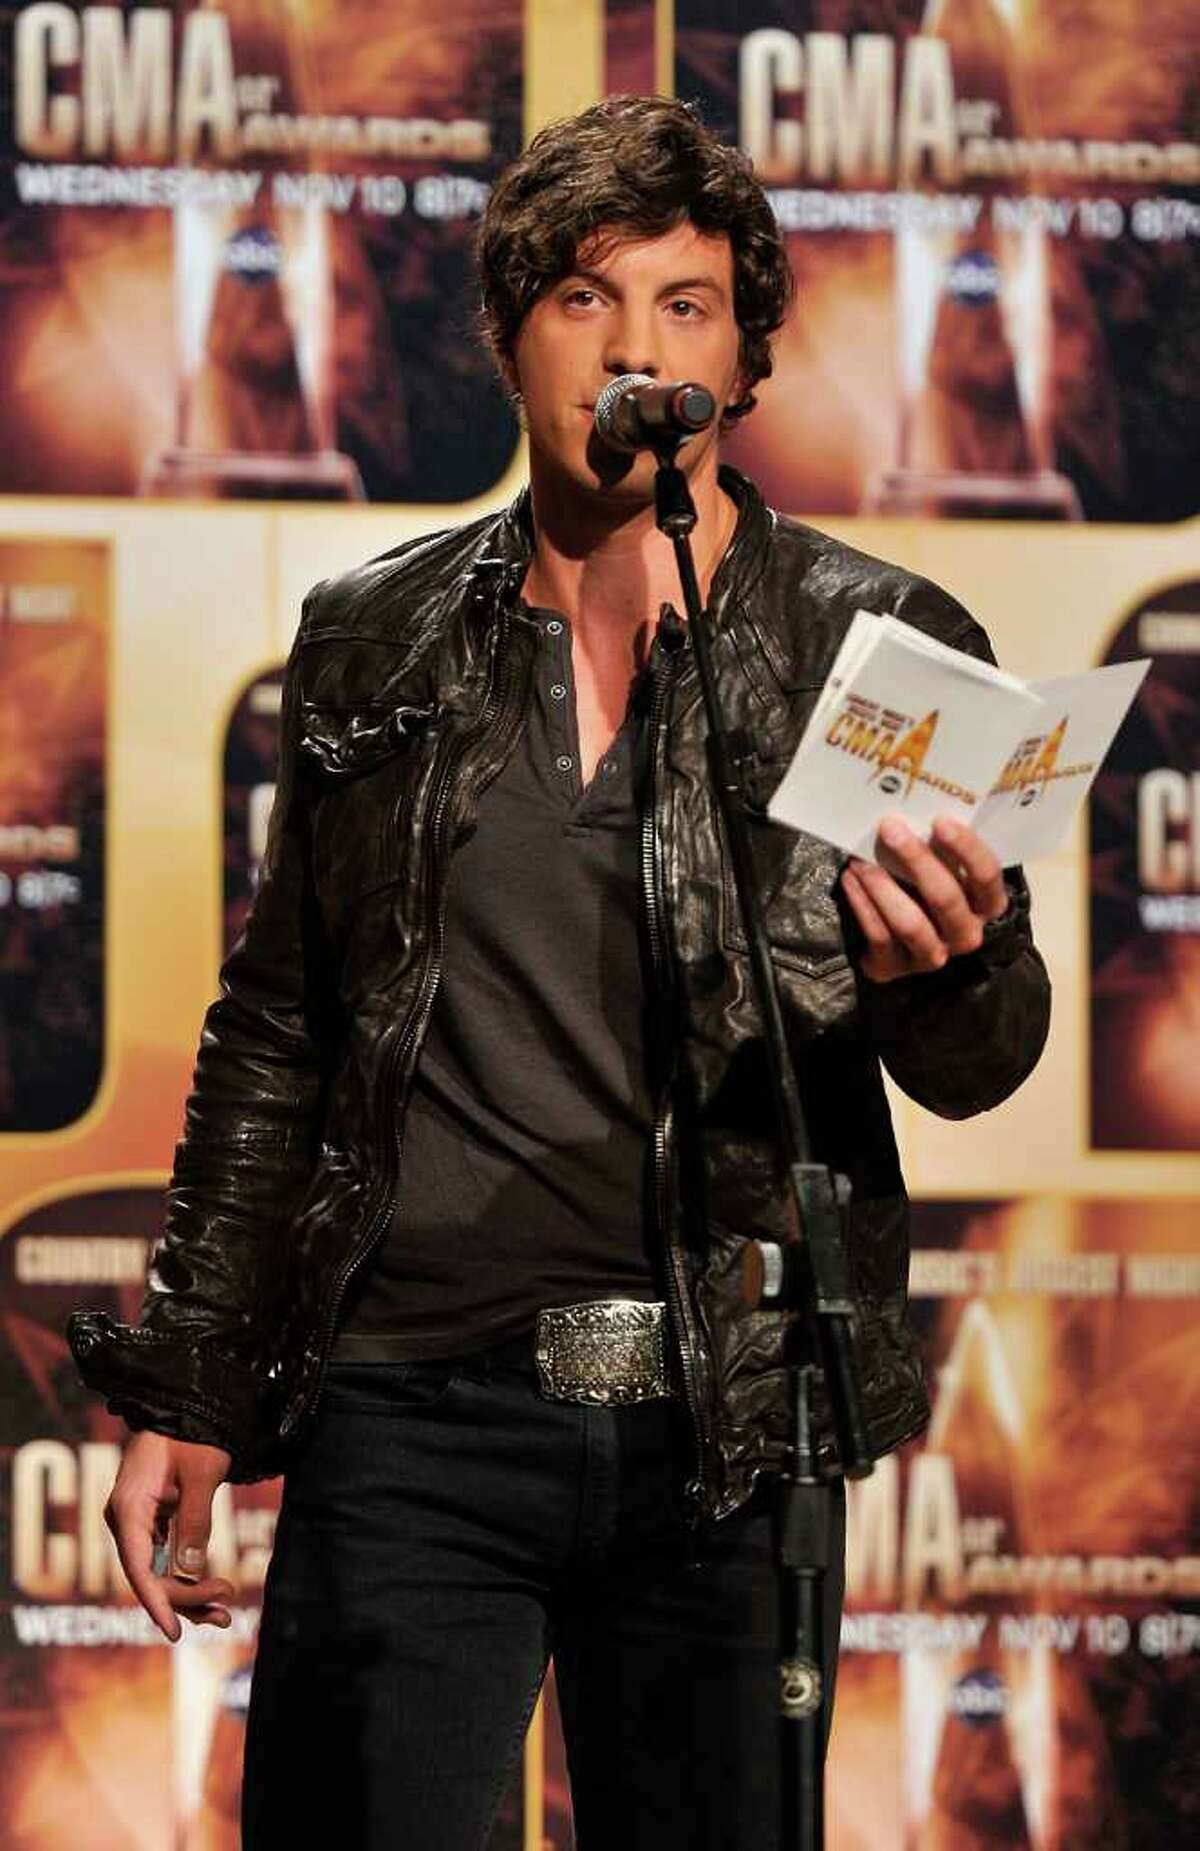 NASHVILLE, TN - AUGUST 31: Joshua Scott Jones of the band Steel Magnolia announce nominees for the 44th Annual CMA Awards at the Ryman Auditorium on August 31, 2010 in Nashville, Tennessee. (Photo by Frederick Breedon/Getty Images) *** Local Caption *** Joshua Scott Jones